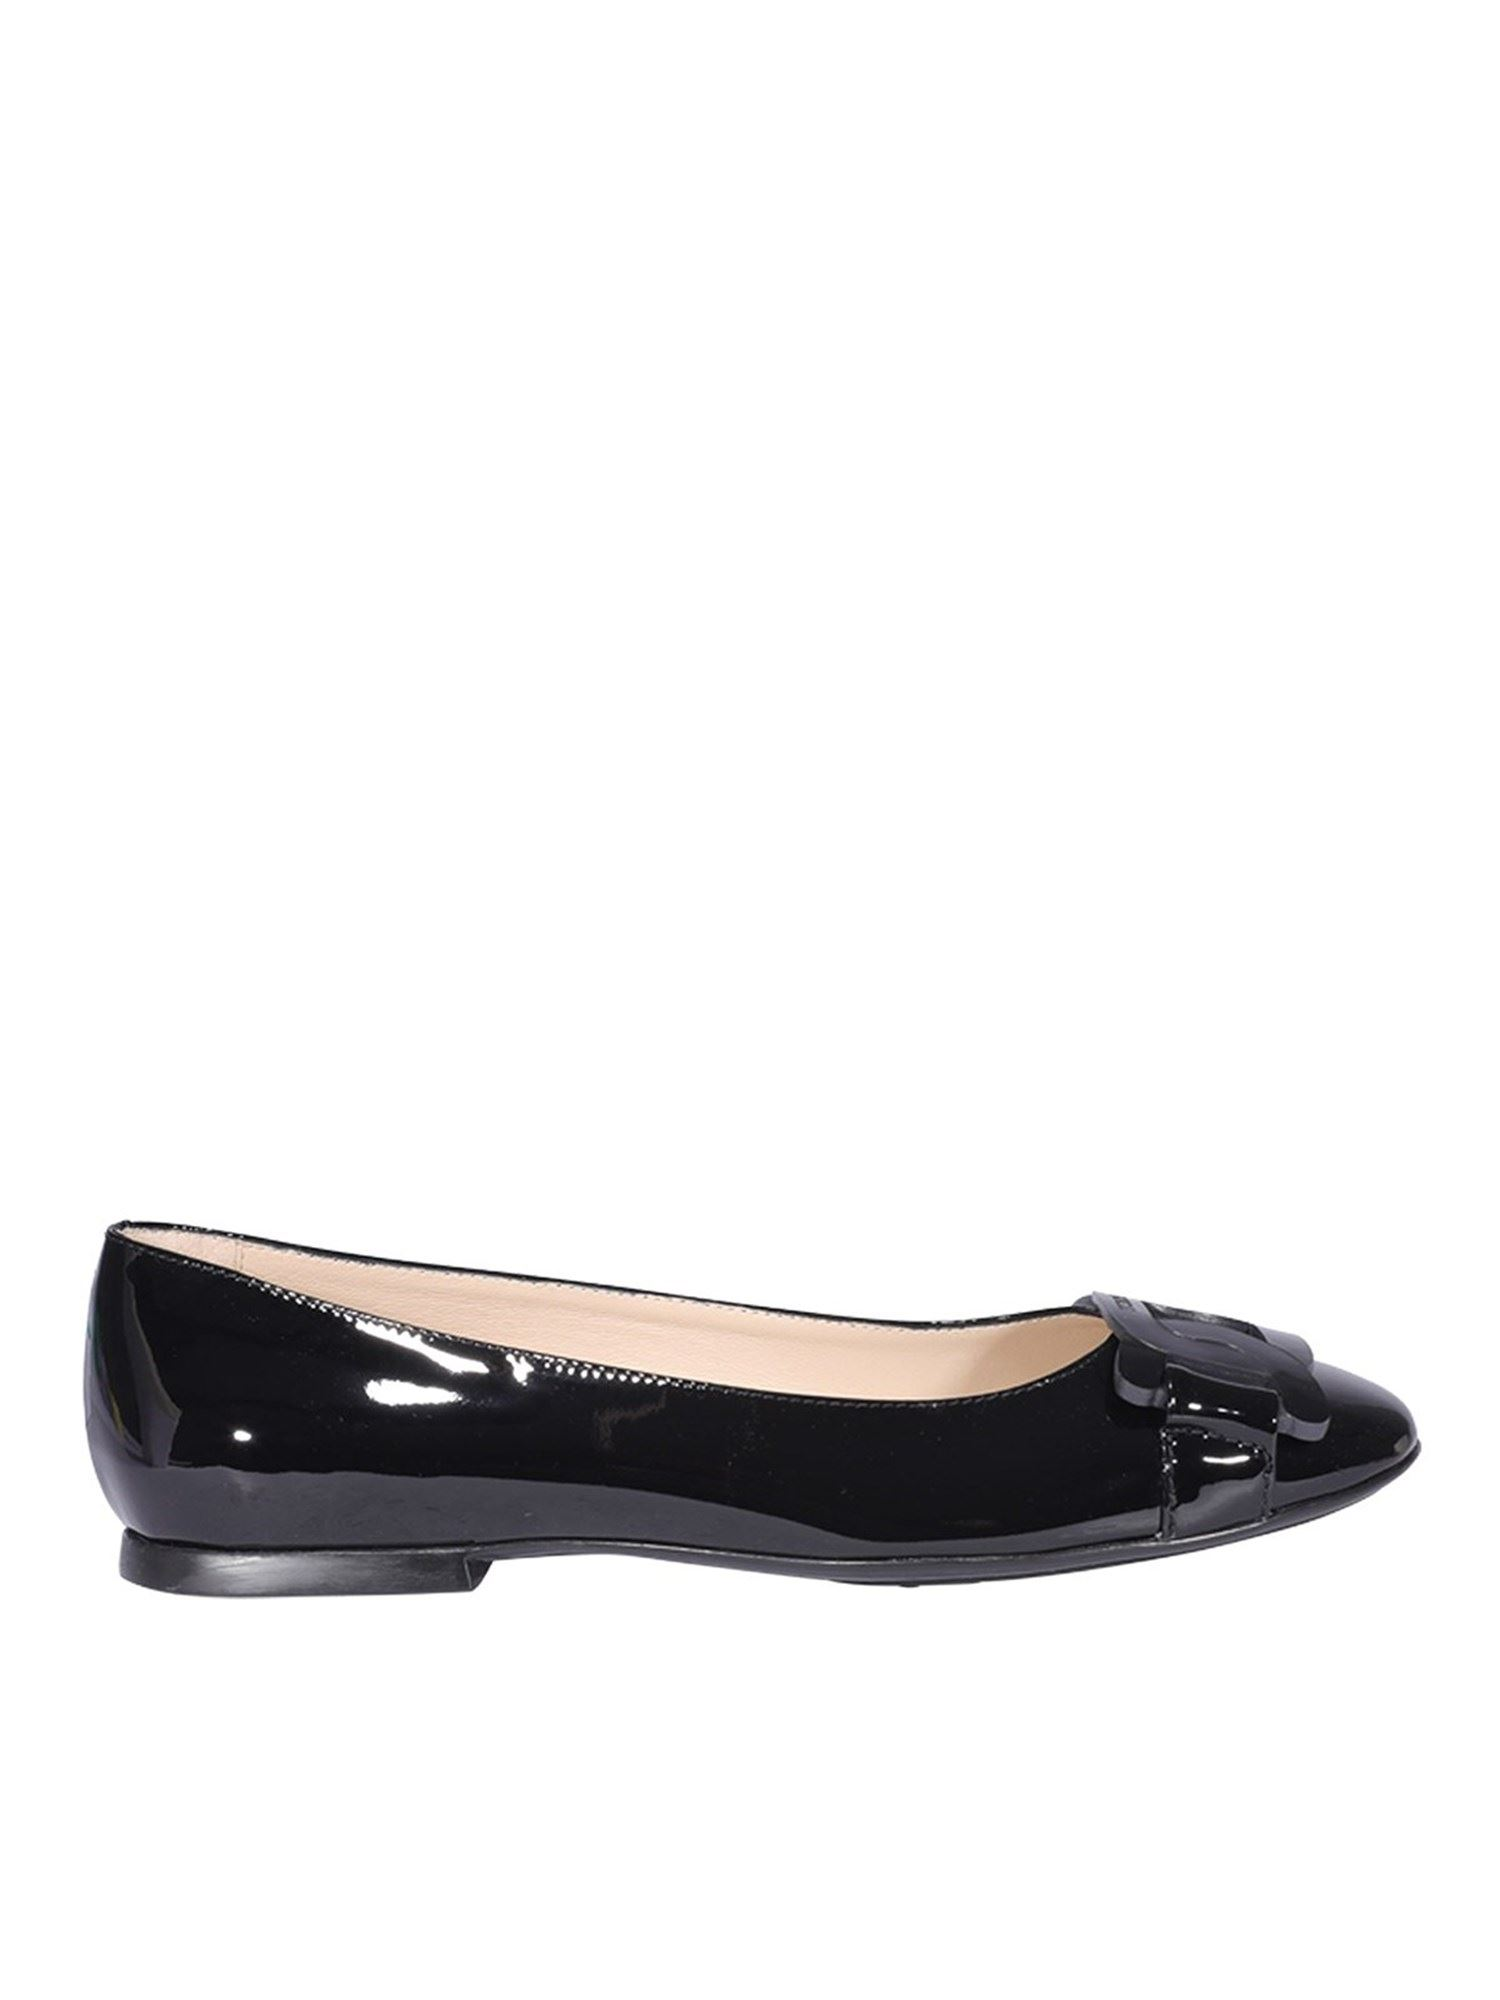 Tod's CHAIN TRIM PATENT LEATHER FLATS IN BLACK